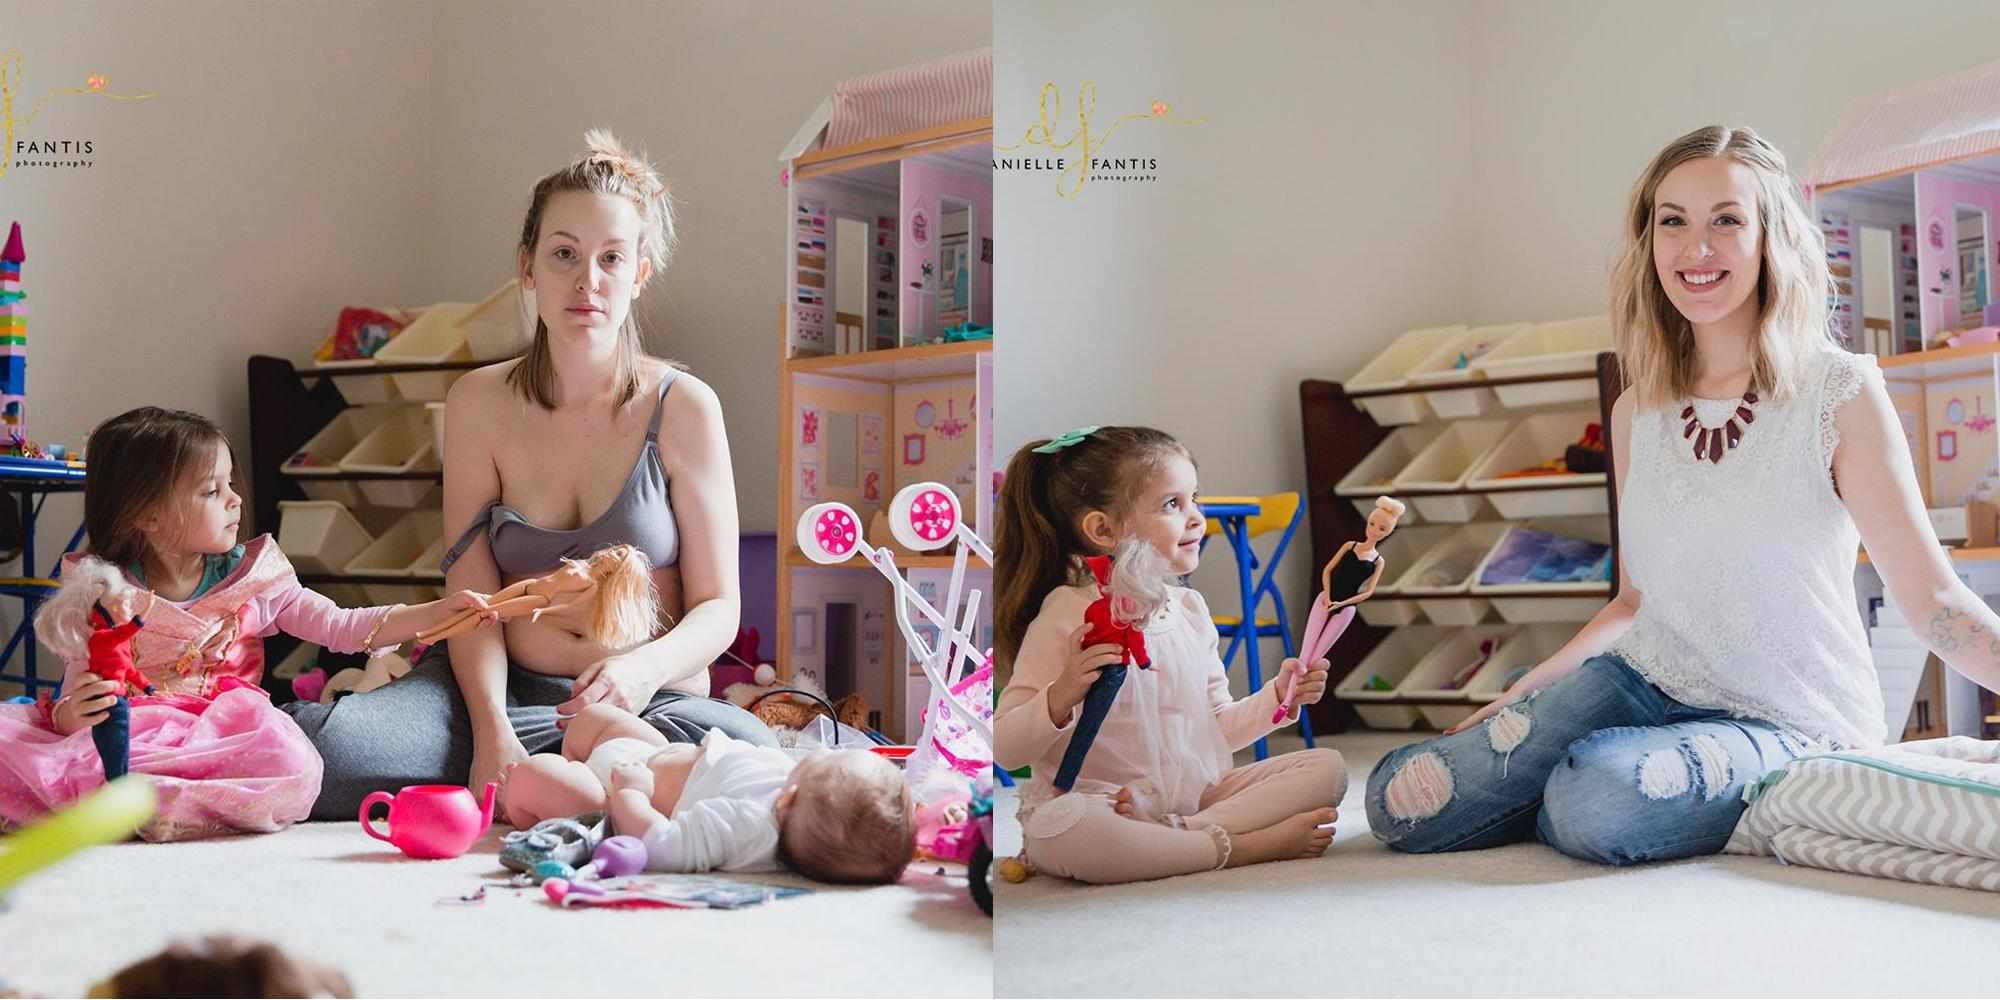 Kathy DiVincenzo, Ohio (real life postpartum vs. instagram postpartum)